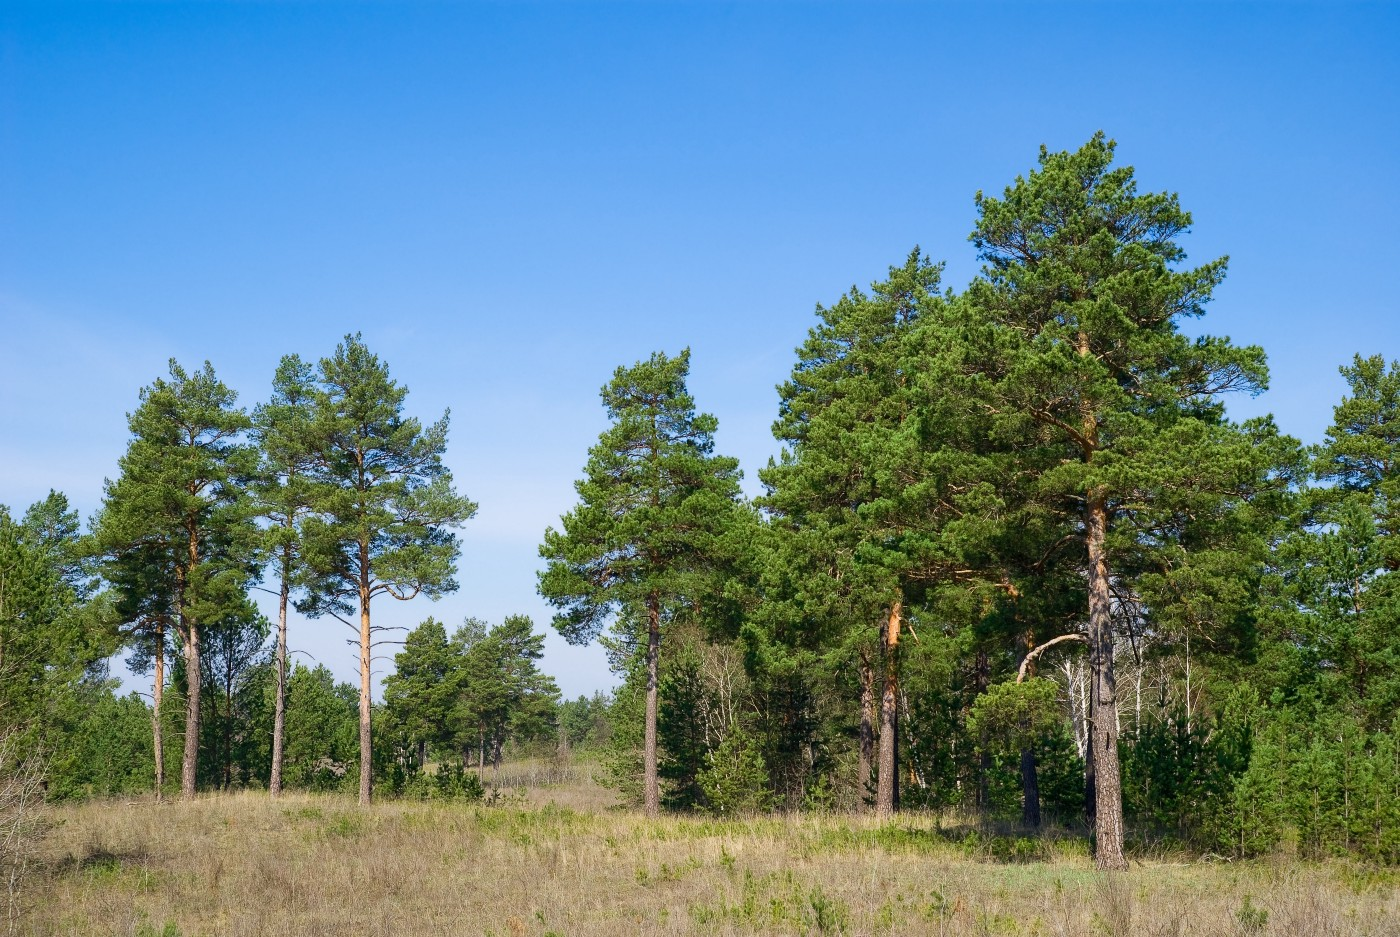 Photo of six pine trees in the foreground, with more ranged behind them immediately and off into the distance. The trunks go up ten to fifteen feet before the branches break out into a bushy crown. Bishops have thick, sturdy, heavy cones that hold themselves tightly together. They're a work of art. You might imagine a carpenter made them. You wouldn't ever want one to fall on your head.